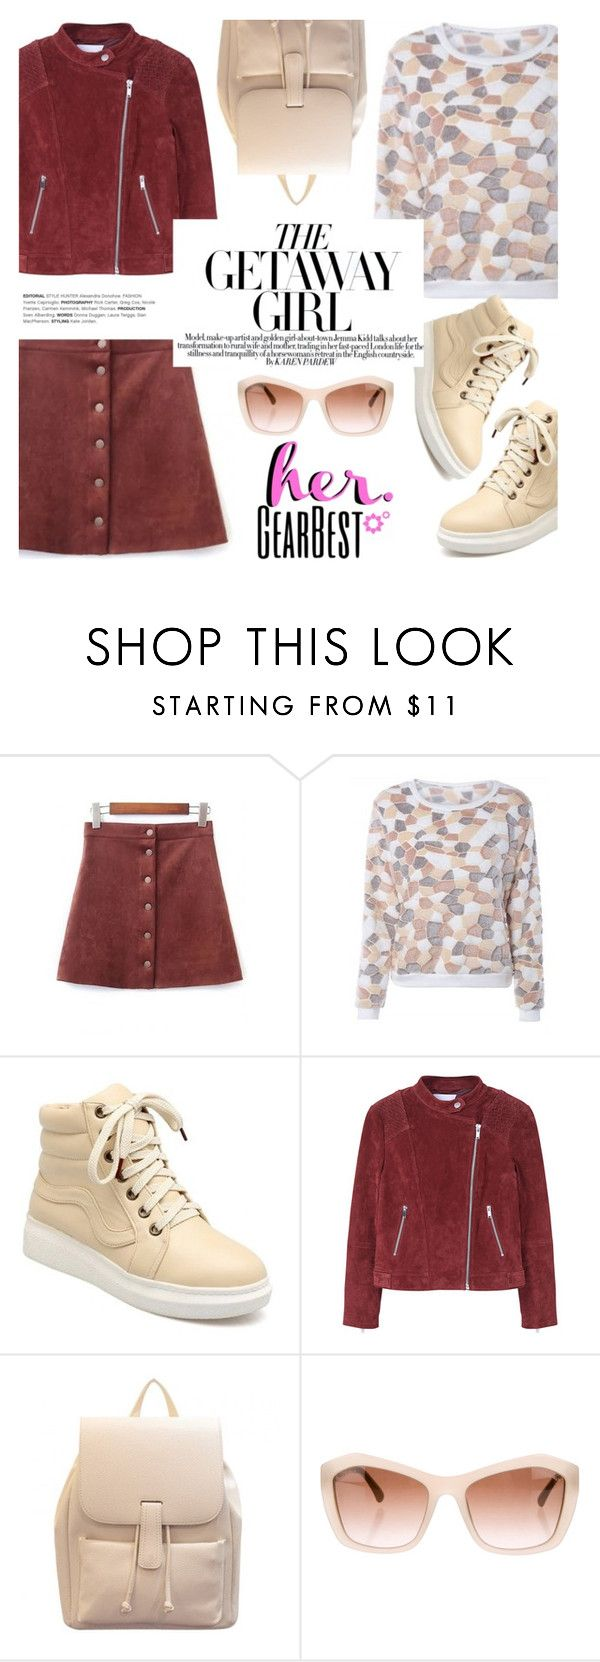 """The getaway girl"" by helenevlacho ❤ liked on Polyvore featuring MANGO, Chanel and hergearbest"